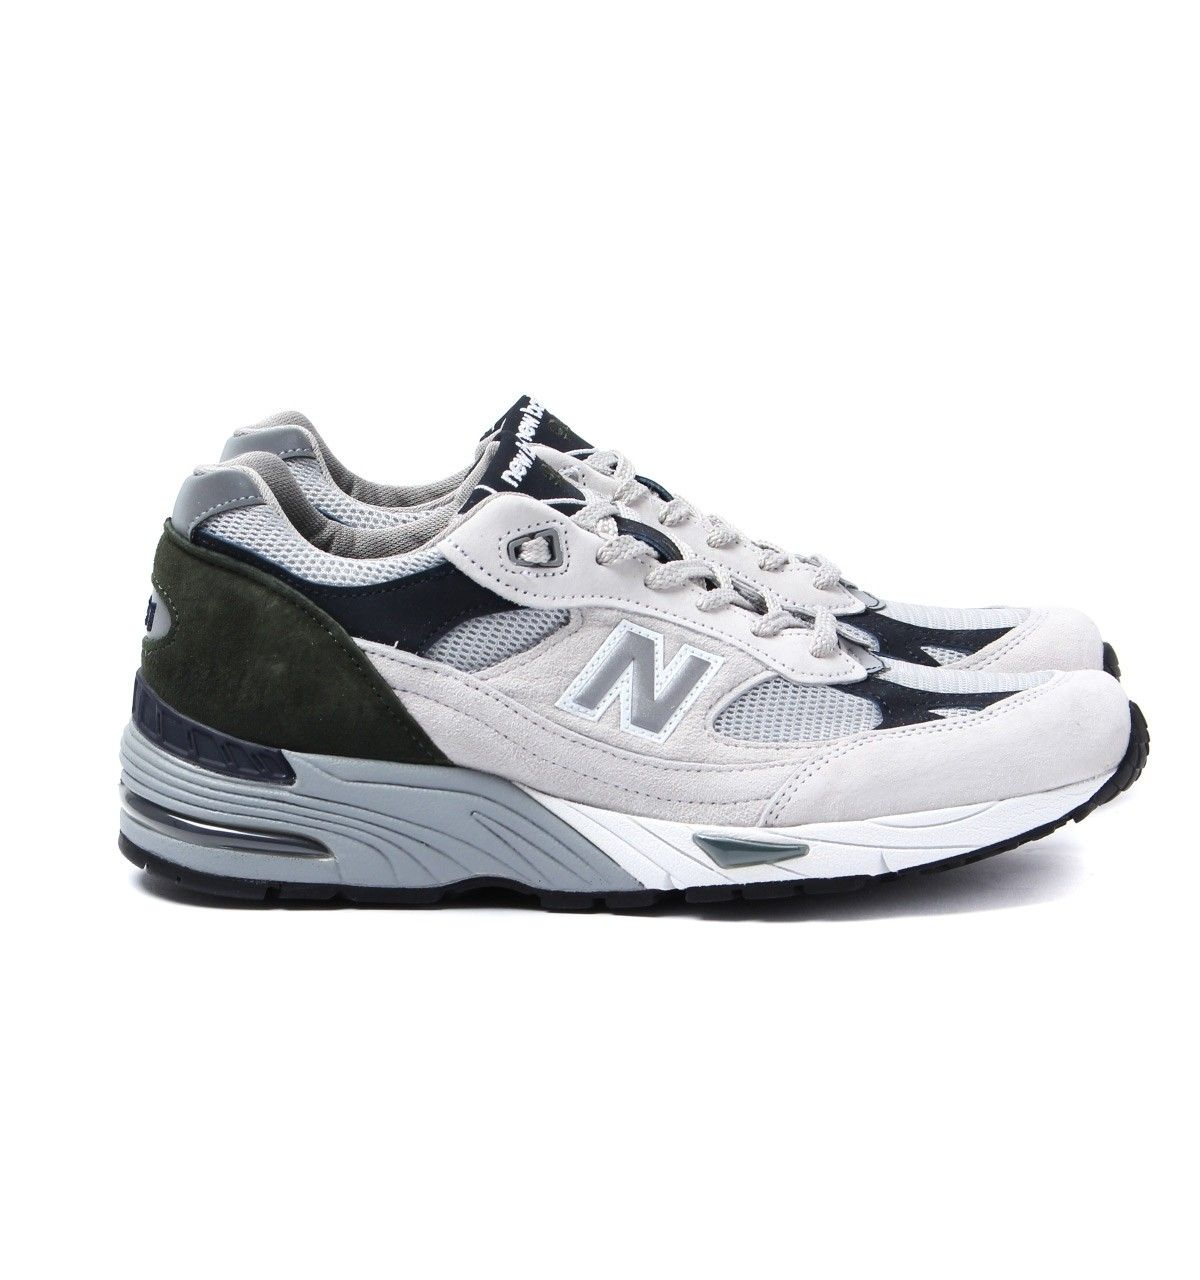 New Balance M991 WGN Off White & Green Made in England Trainers